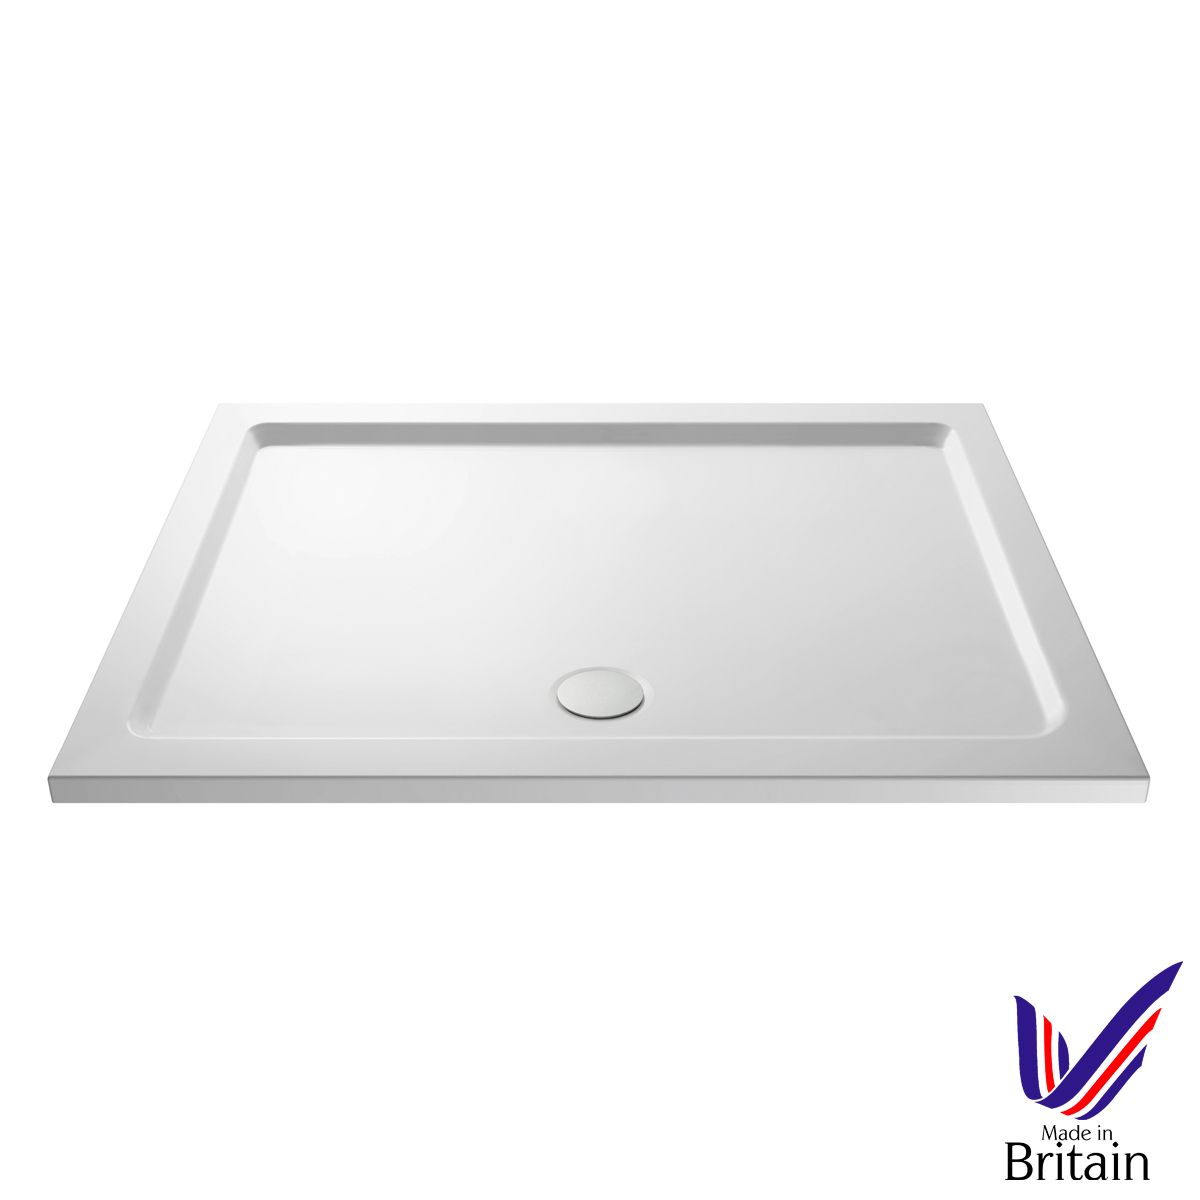 1400 x 700 Shower Tray Rectangular Low Profile by Pearlstone